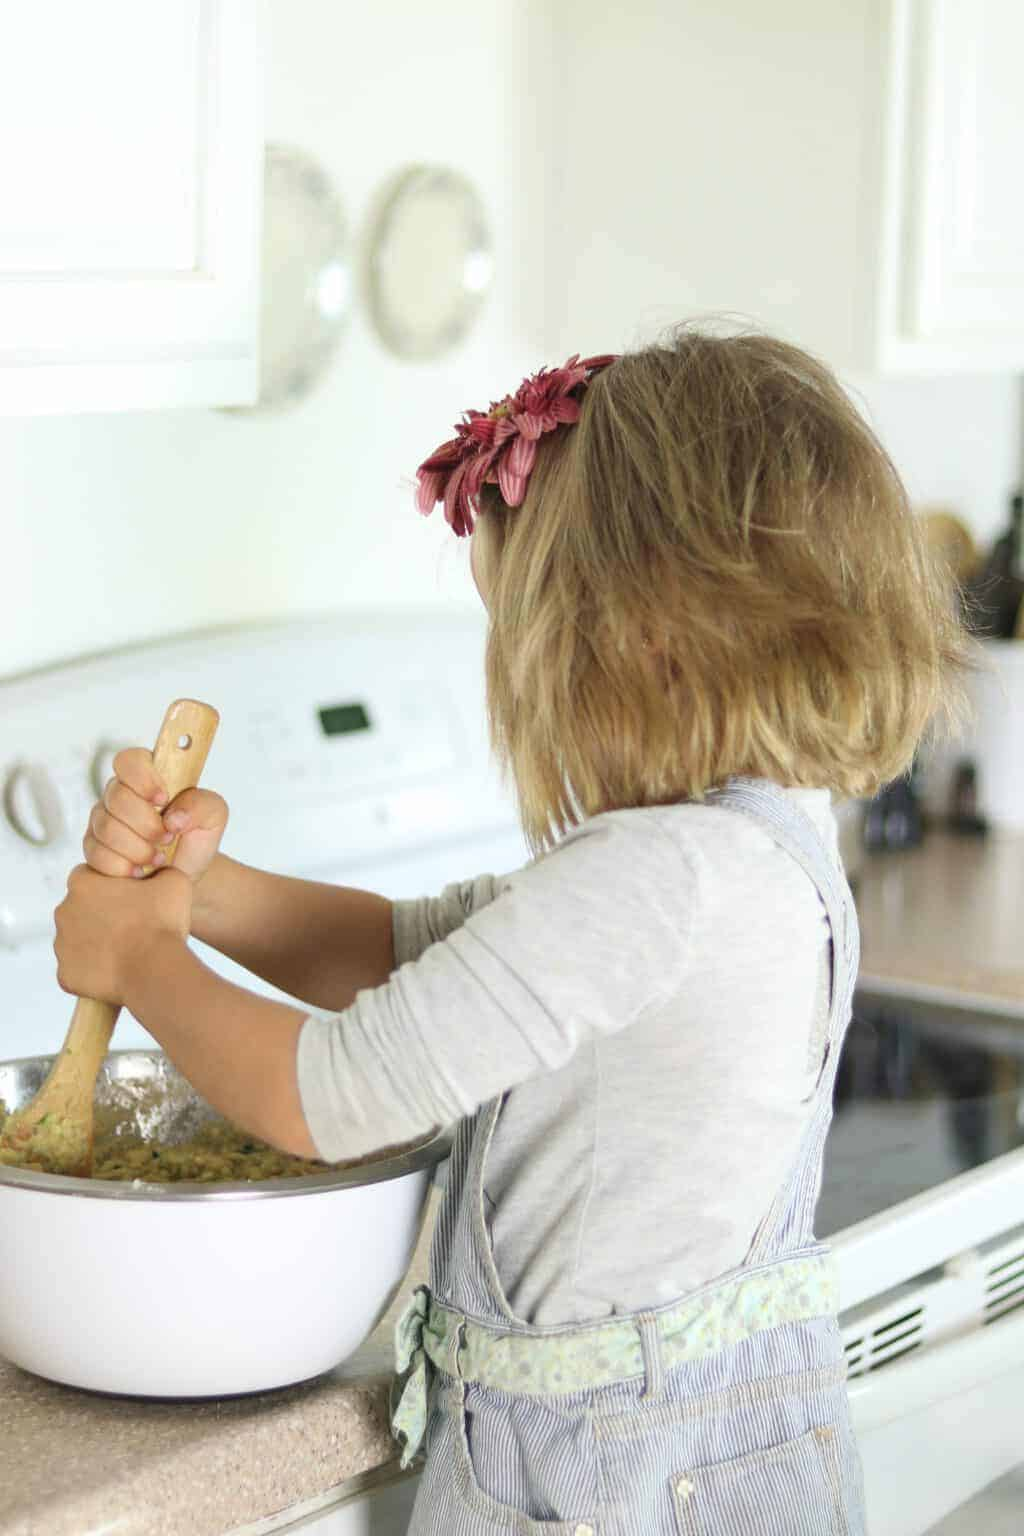 Letting your child help prepare the meal can make them more likely to eat the food, even if it is something they don't usually like to eat.